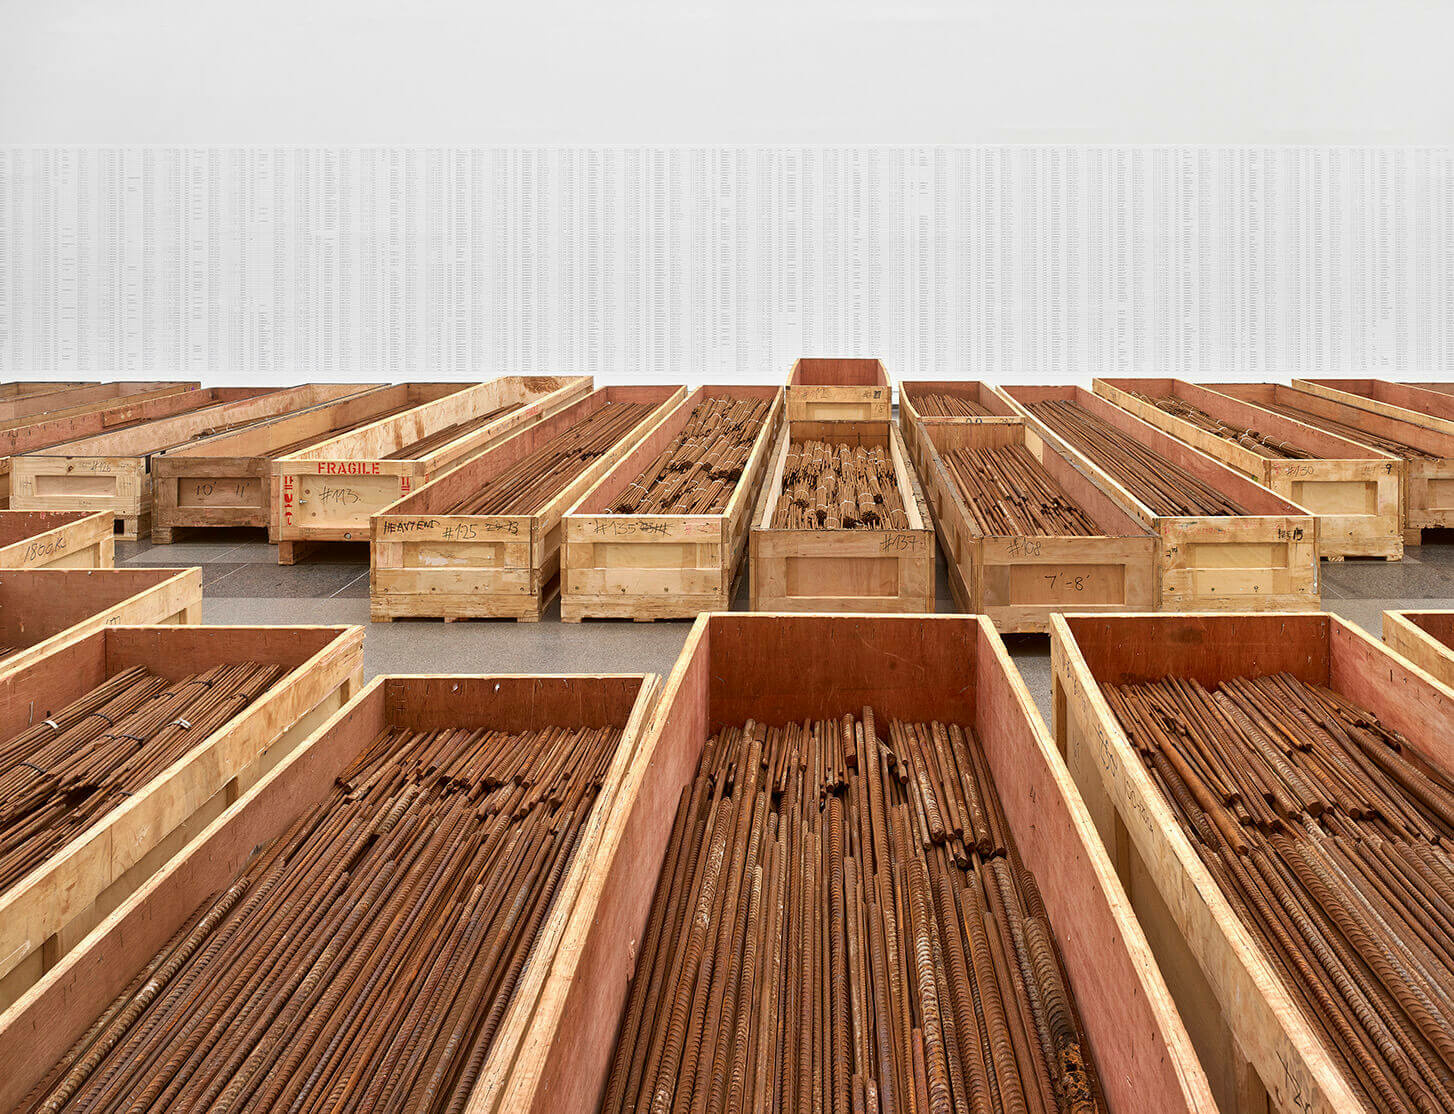 Ai Weiwei's largest solo exhibition in Europe opens at Düsseldorf's K20 and K21